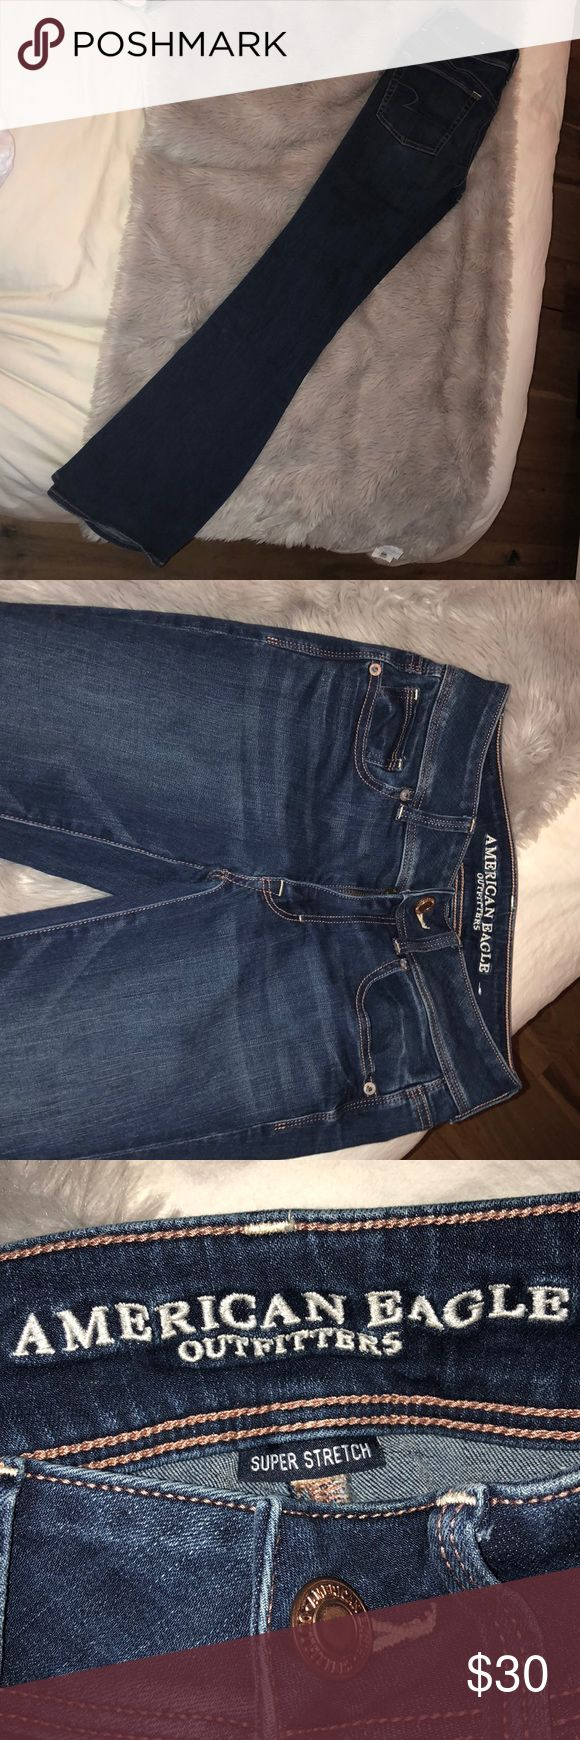 American eagle kick boot super stretch jeans only worn once to a bone fire with converse, super cute with converse, vans, boots or sandals! American Eagle Outfitters Jeans Boot Cut